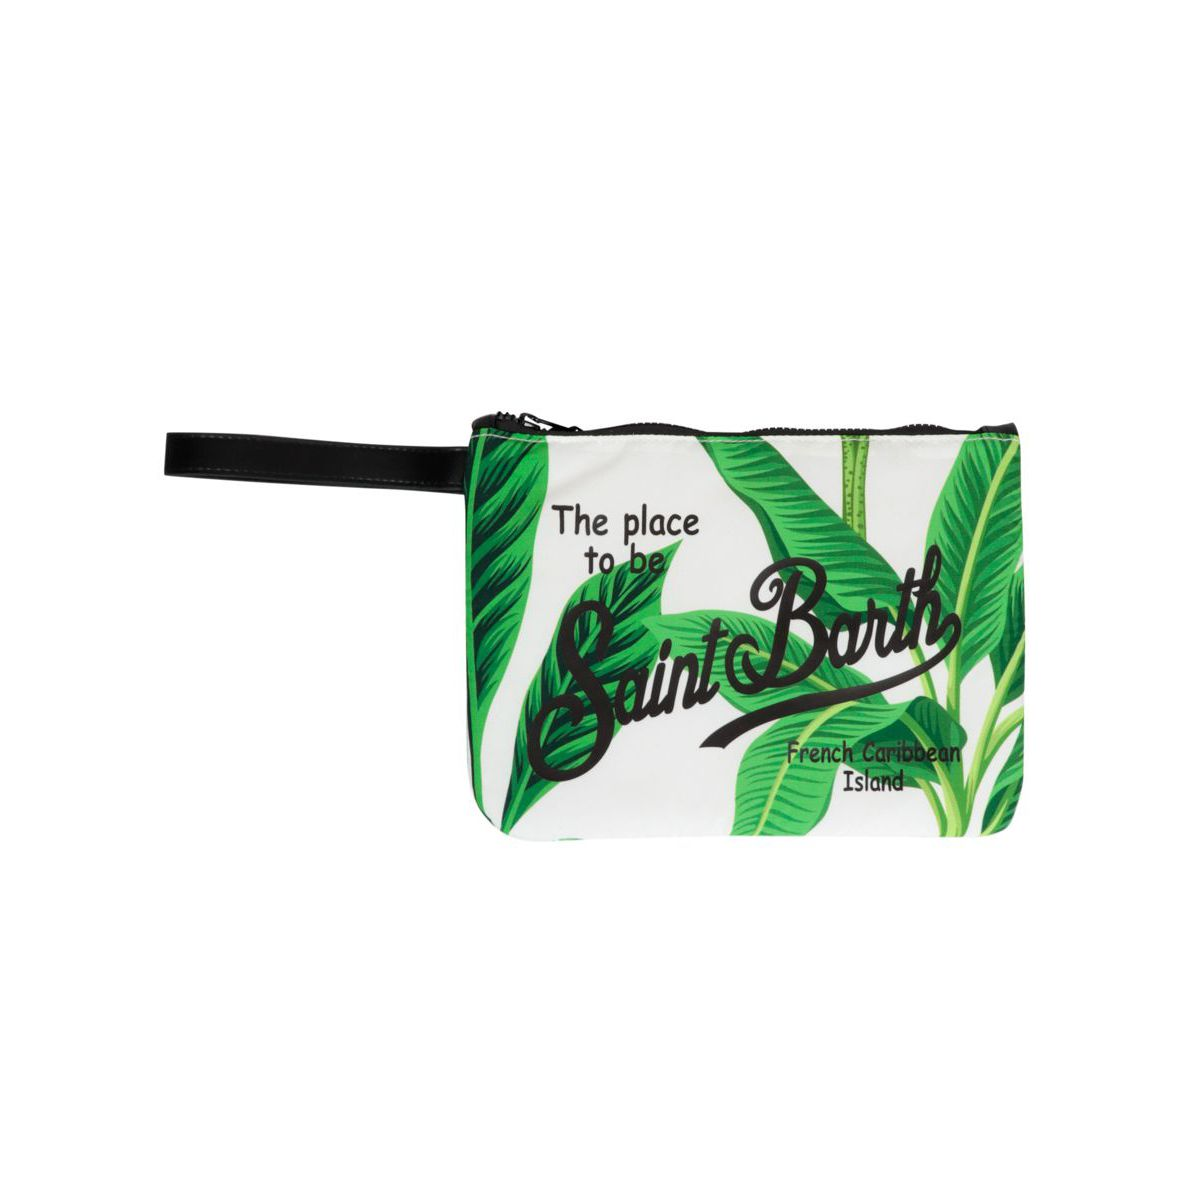 Parisienne patterned clutch bag with contrasting logo White green MC2 Saint Barth